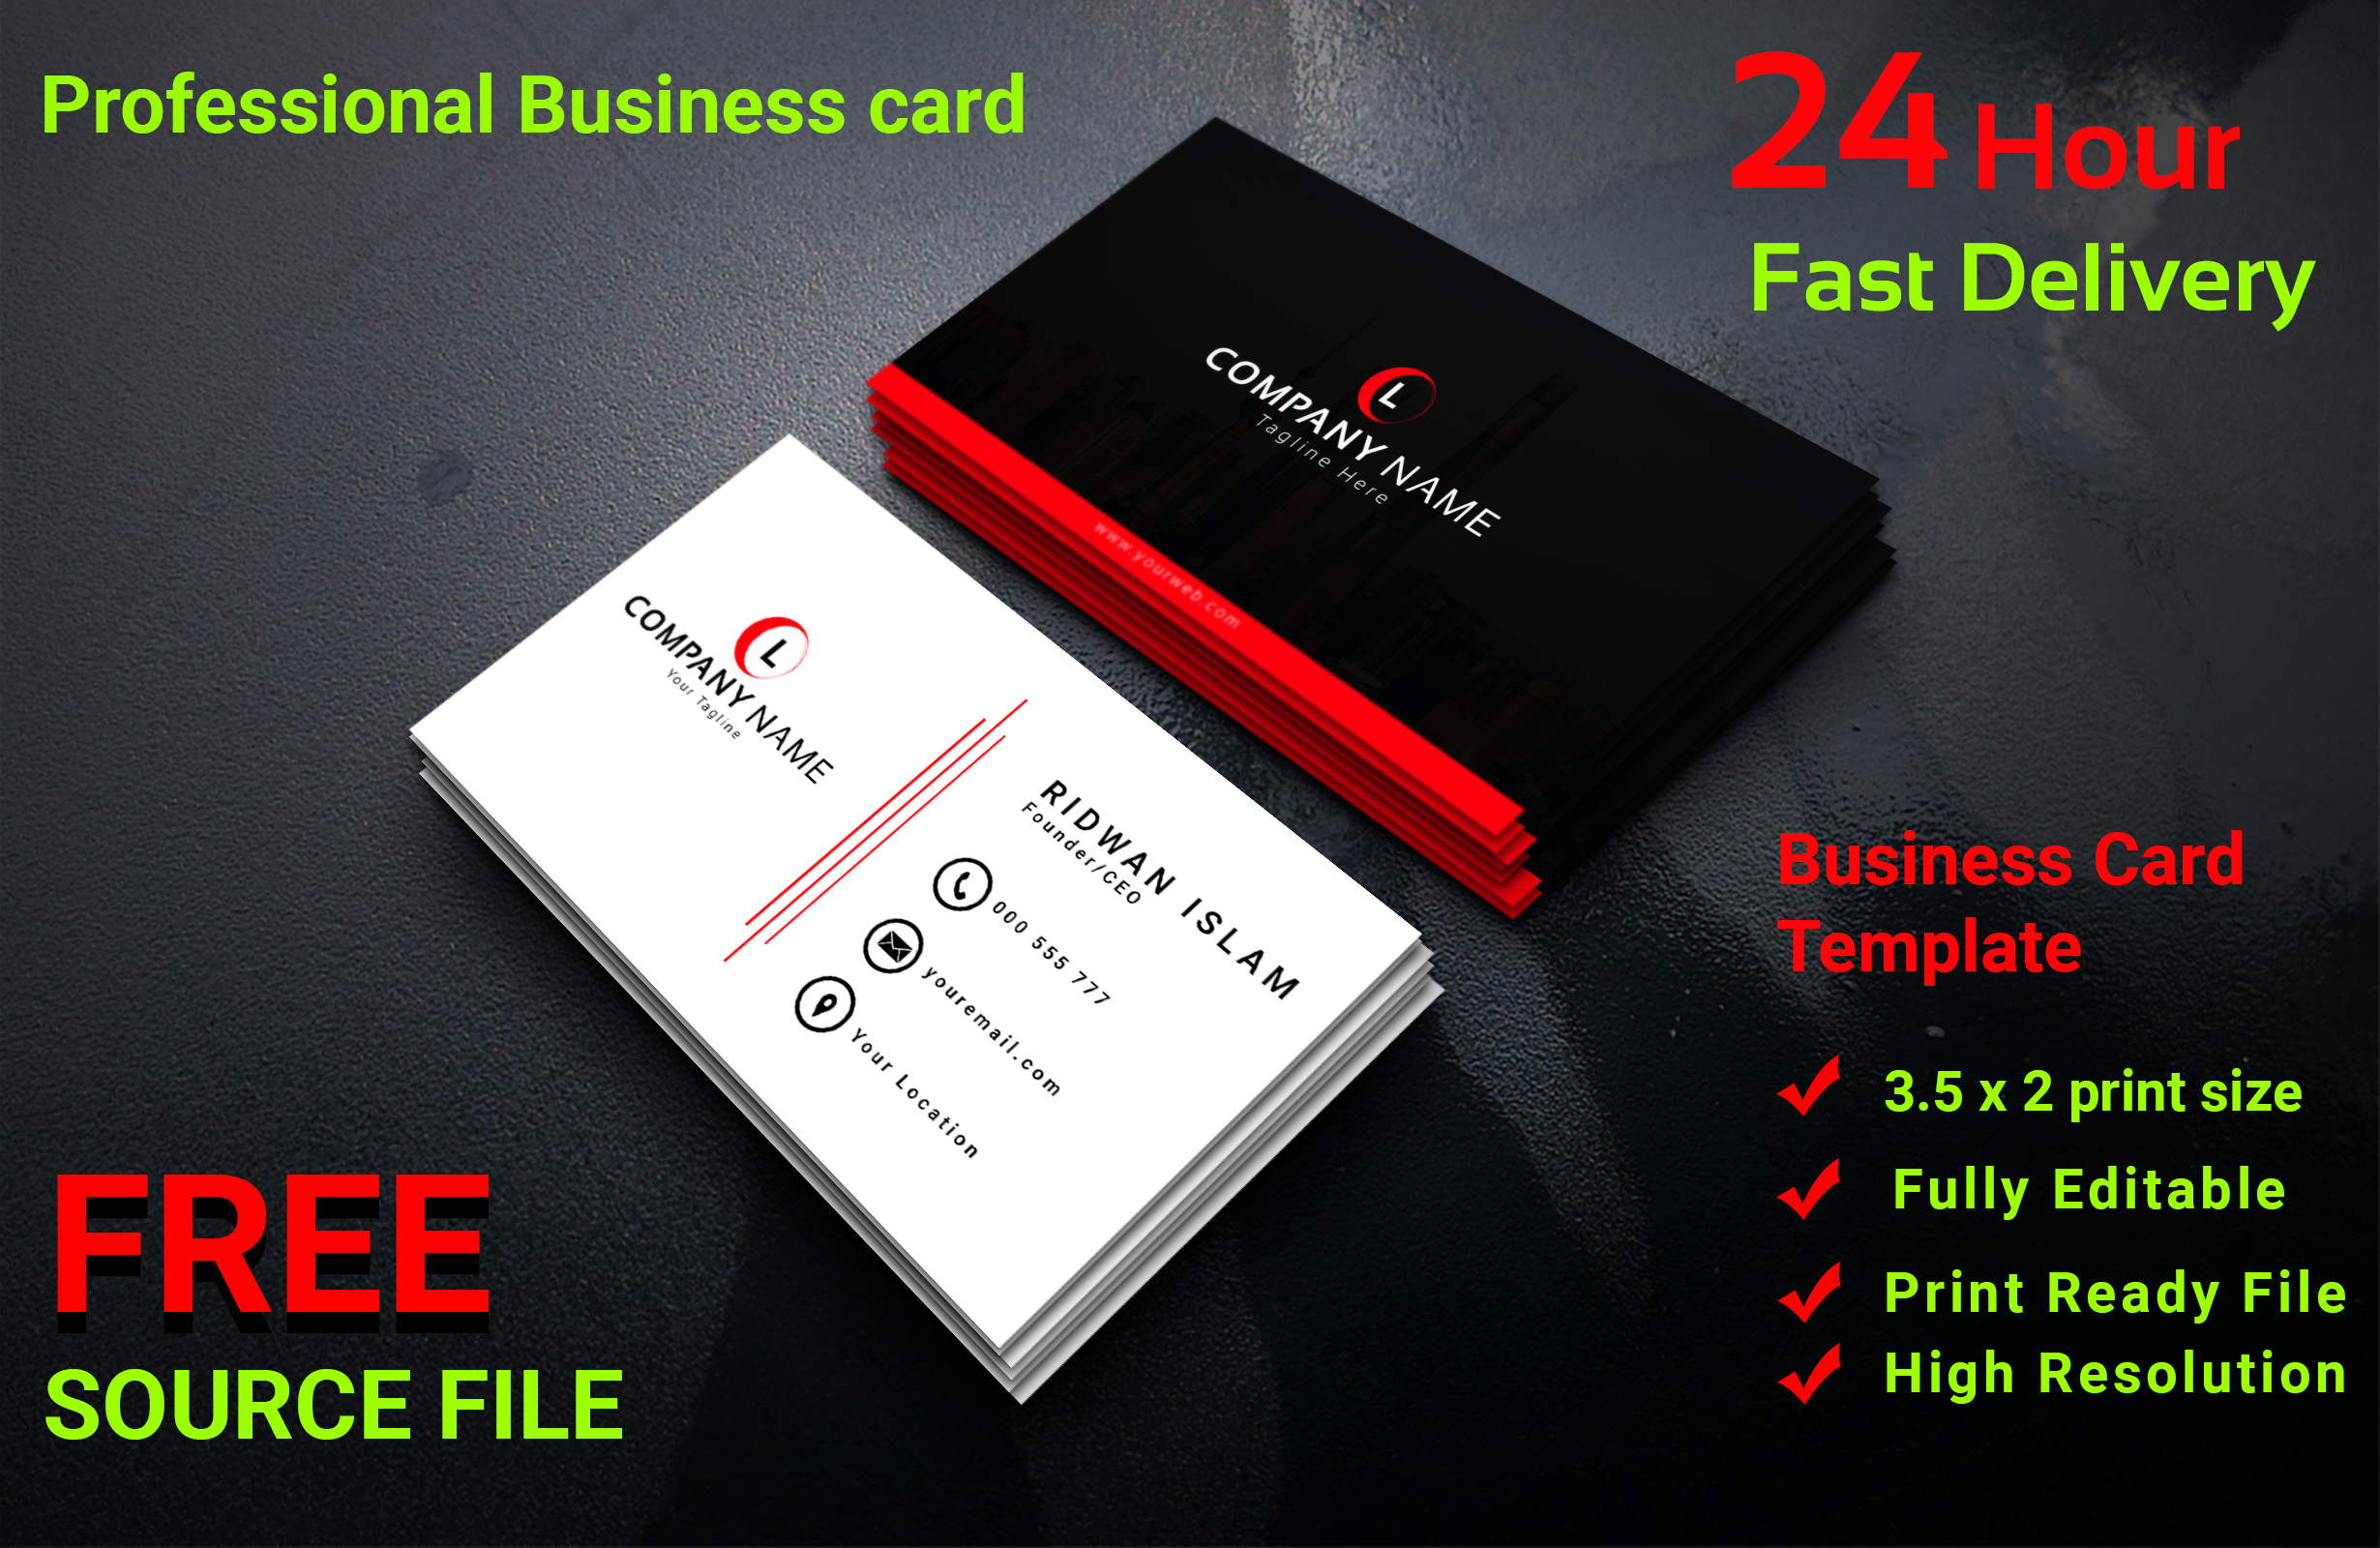 I will design unique professional Business card within 24 hours